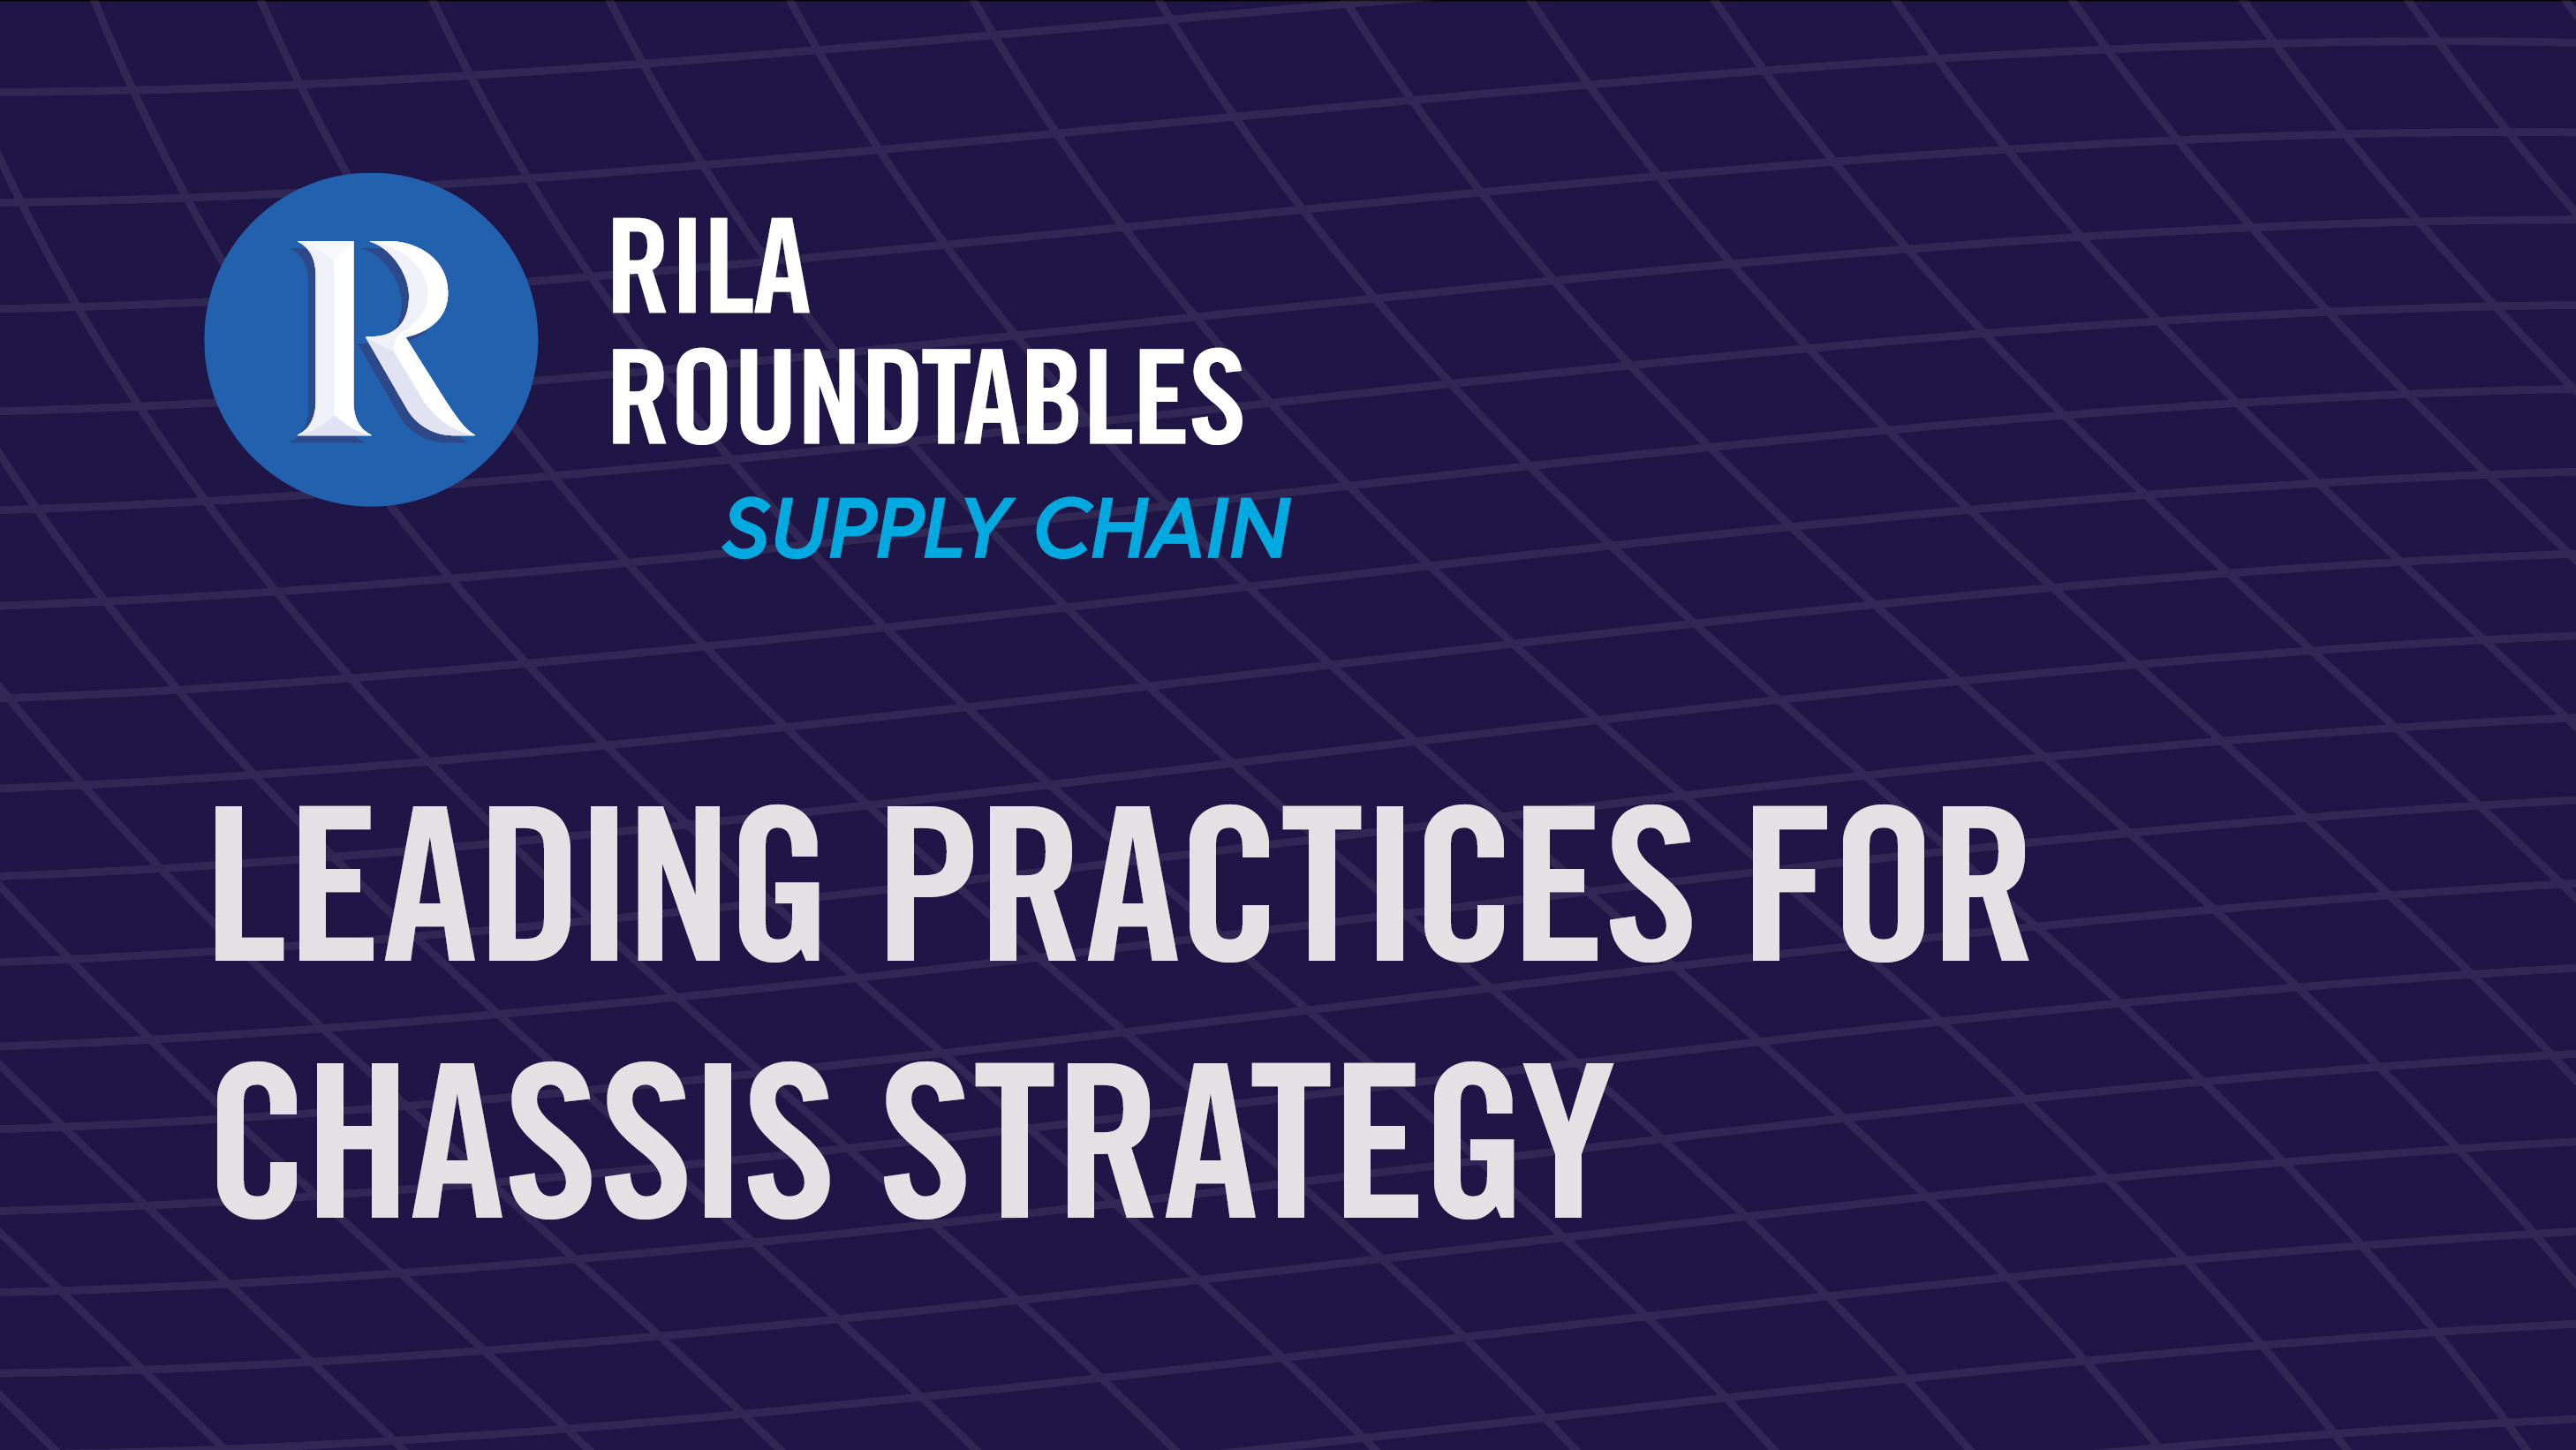 RILA Round Table: Leading Practices for Chassis Strategy